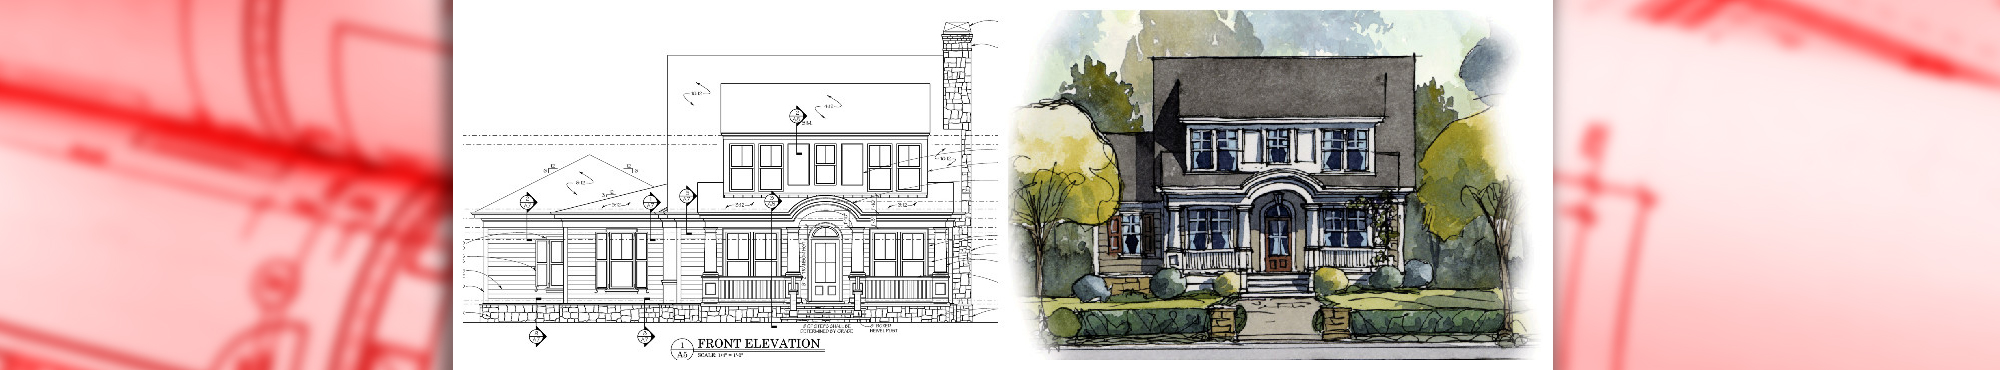 Full House Blueprint and Rendering